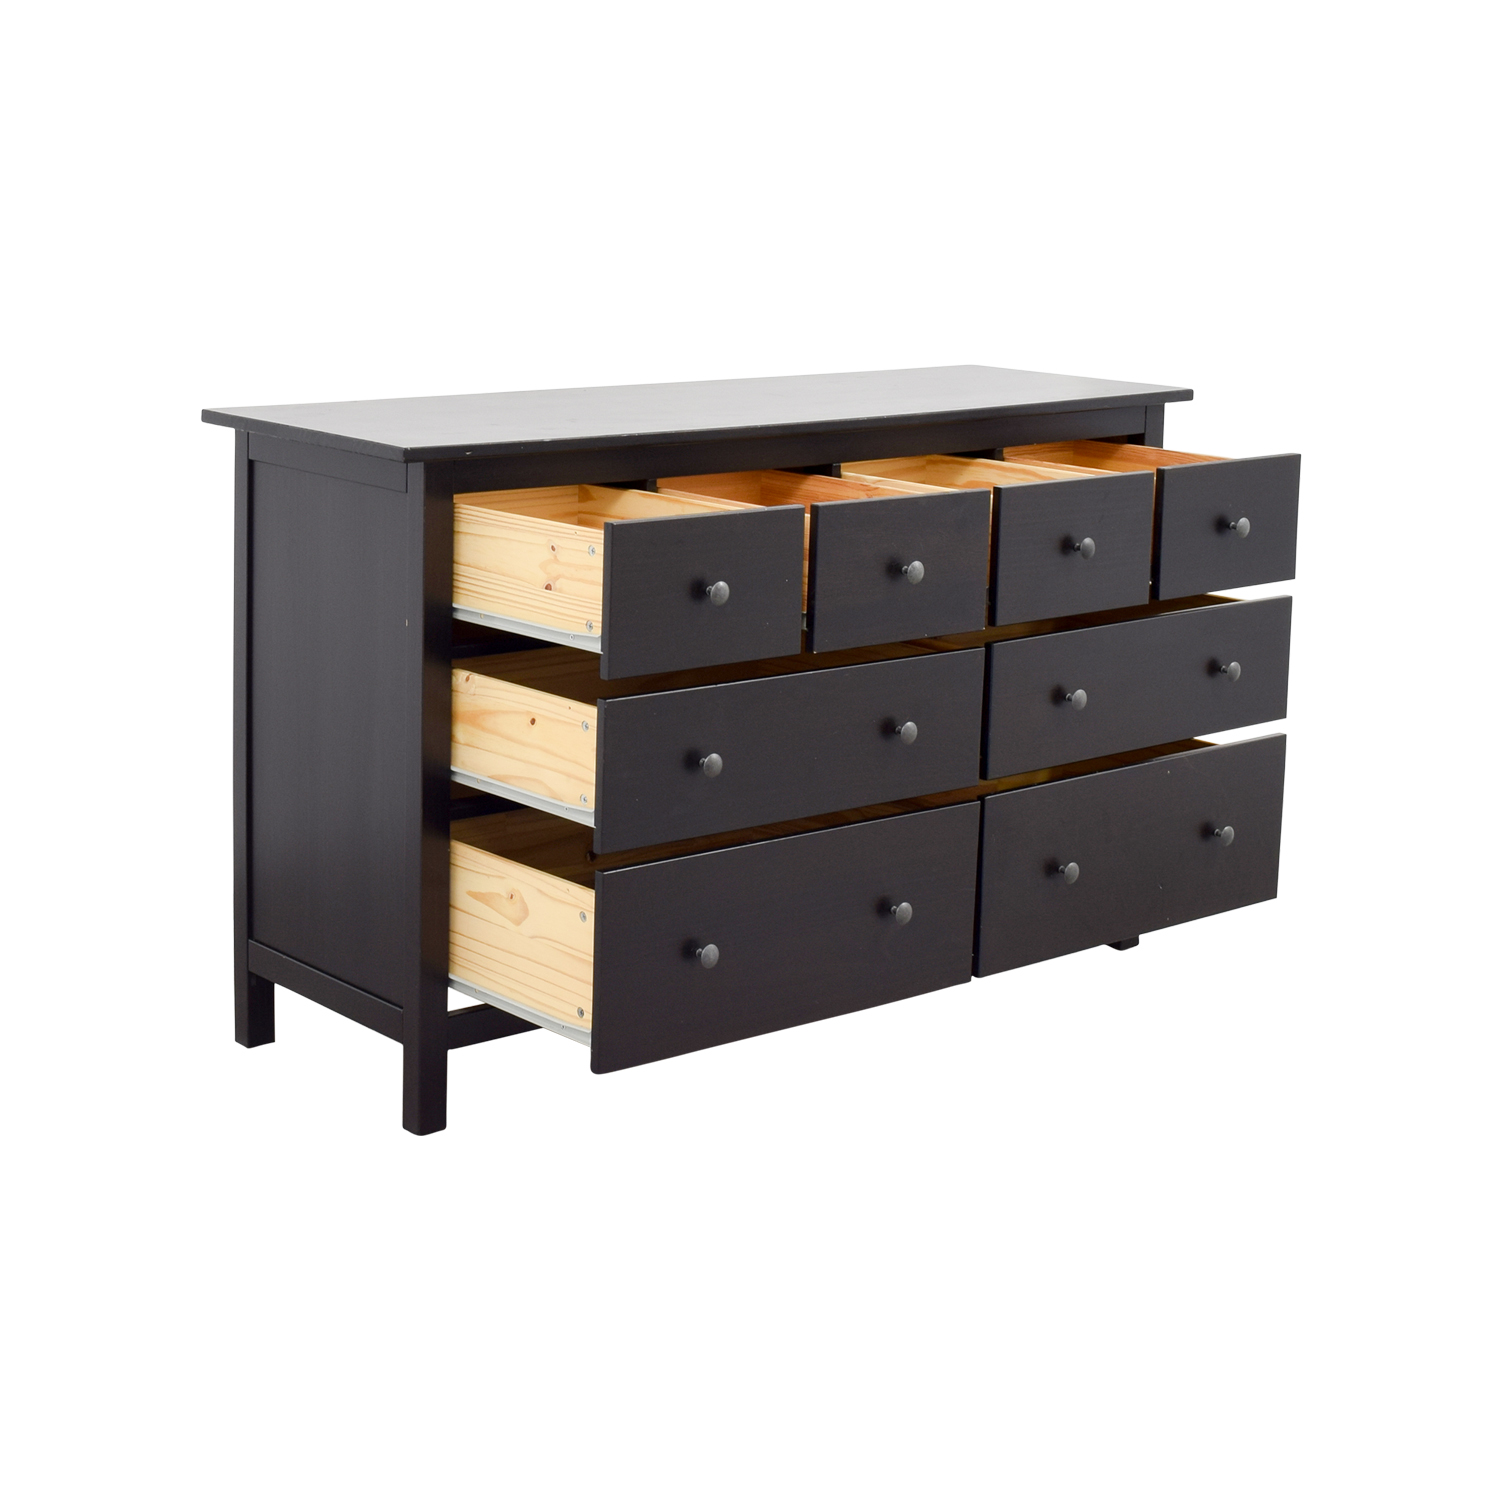 ikea wickelkommode hemnes wickelkommode aufsatz ikea hemnes ikea hemnes wickelkommode wei. Black Bedroom Furniture Sets. Home Design Ideas